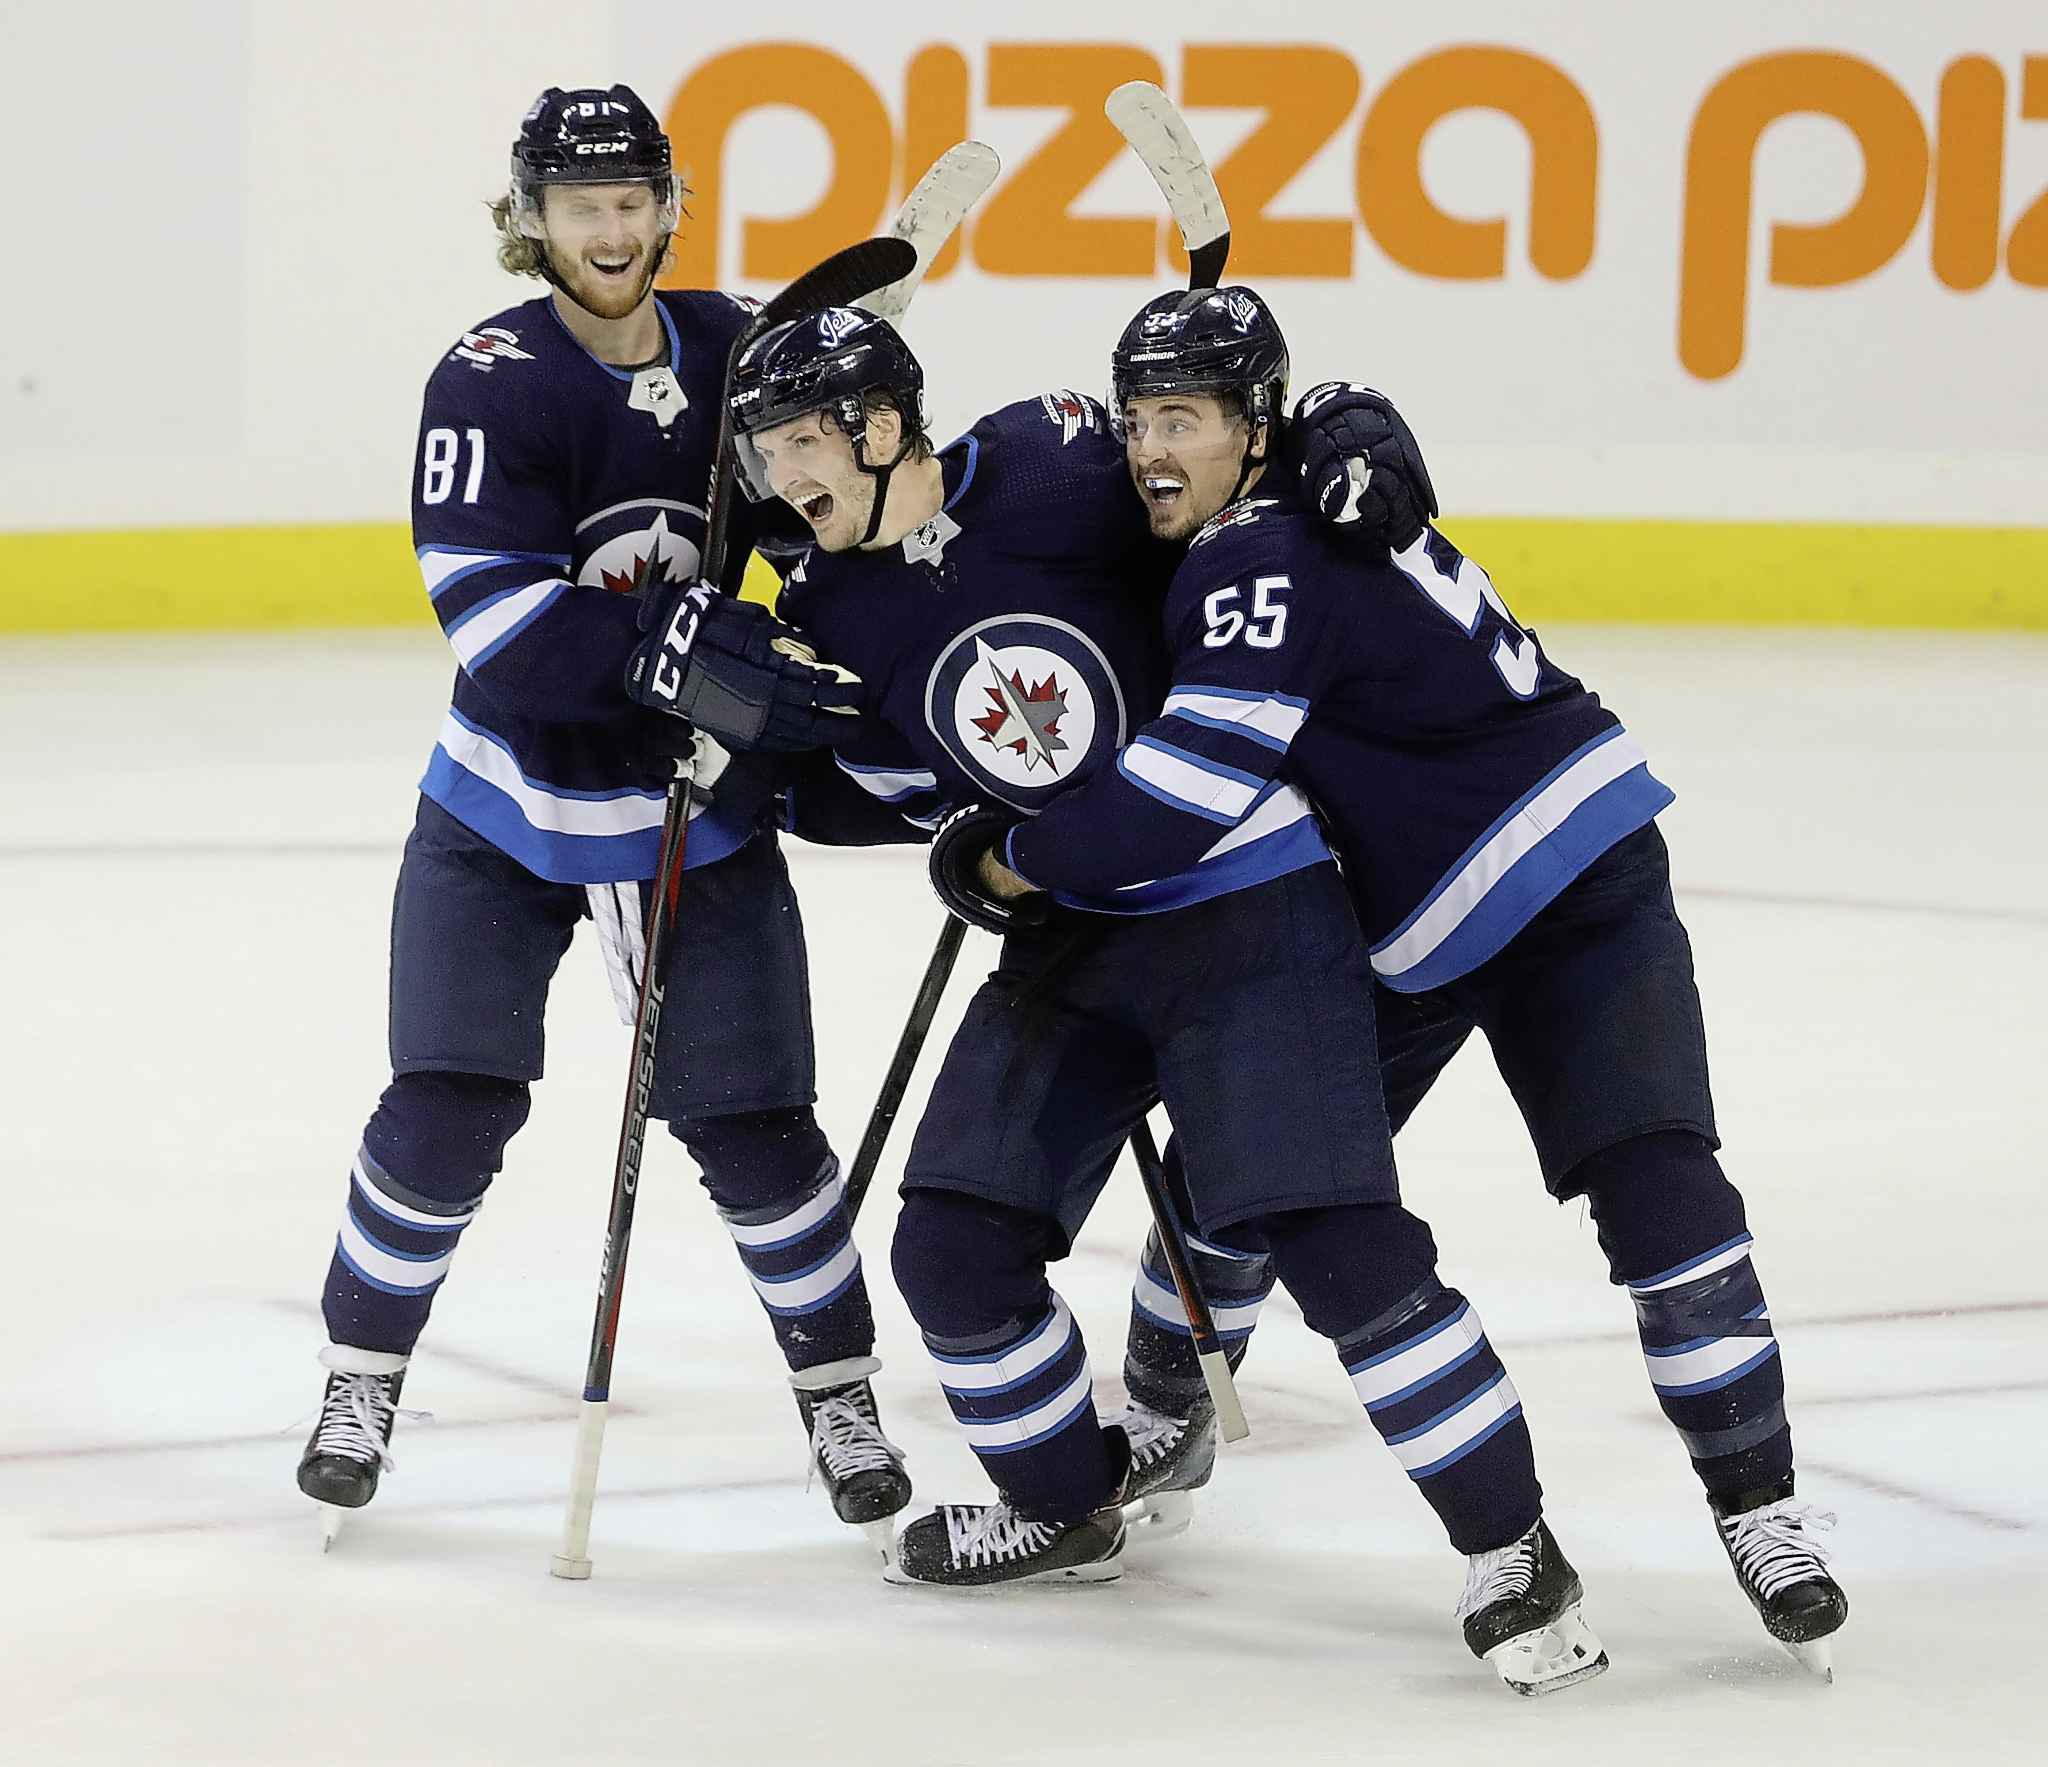 Winnipeg Jets' Kyle Connor (81), Jacob Trouba (8), and Mark Scheifele (55) celebrate after Trouba scored the game-winning goal against the St. Louis Blues. (Trevor Hagan / The Canadian Press)